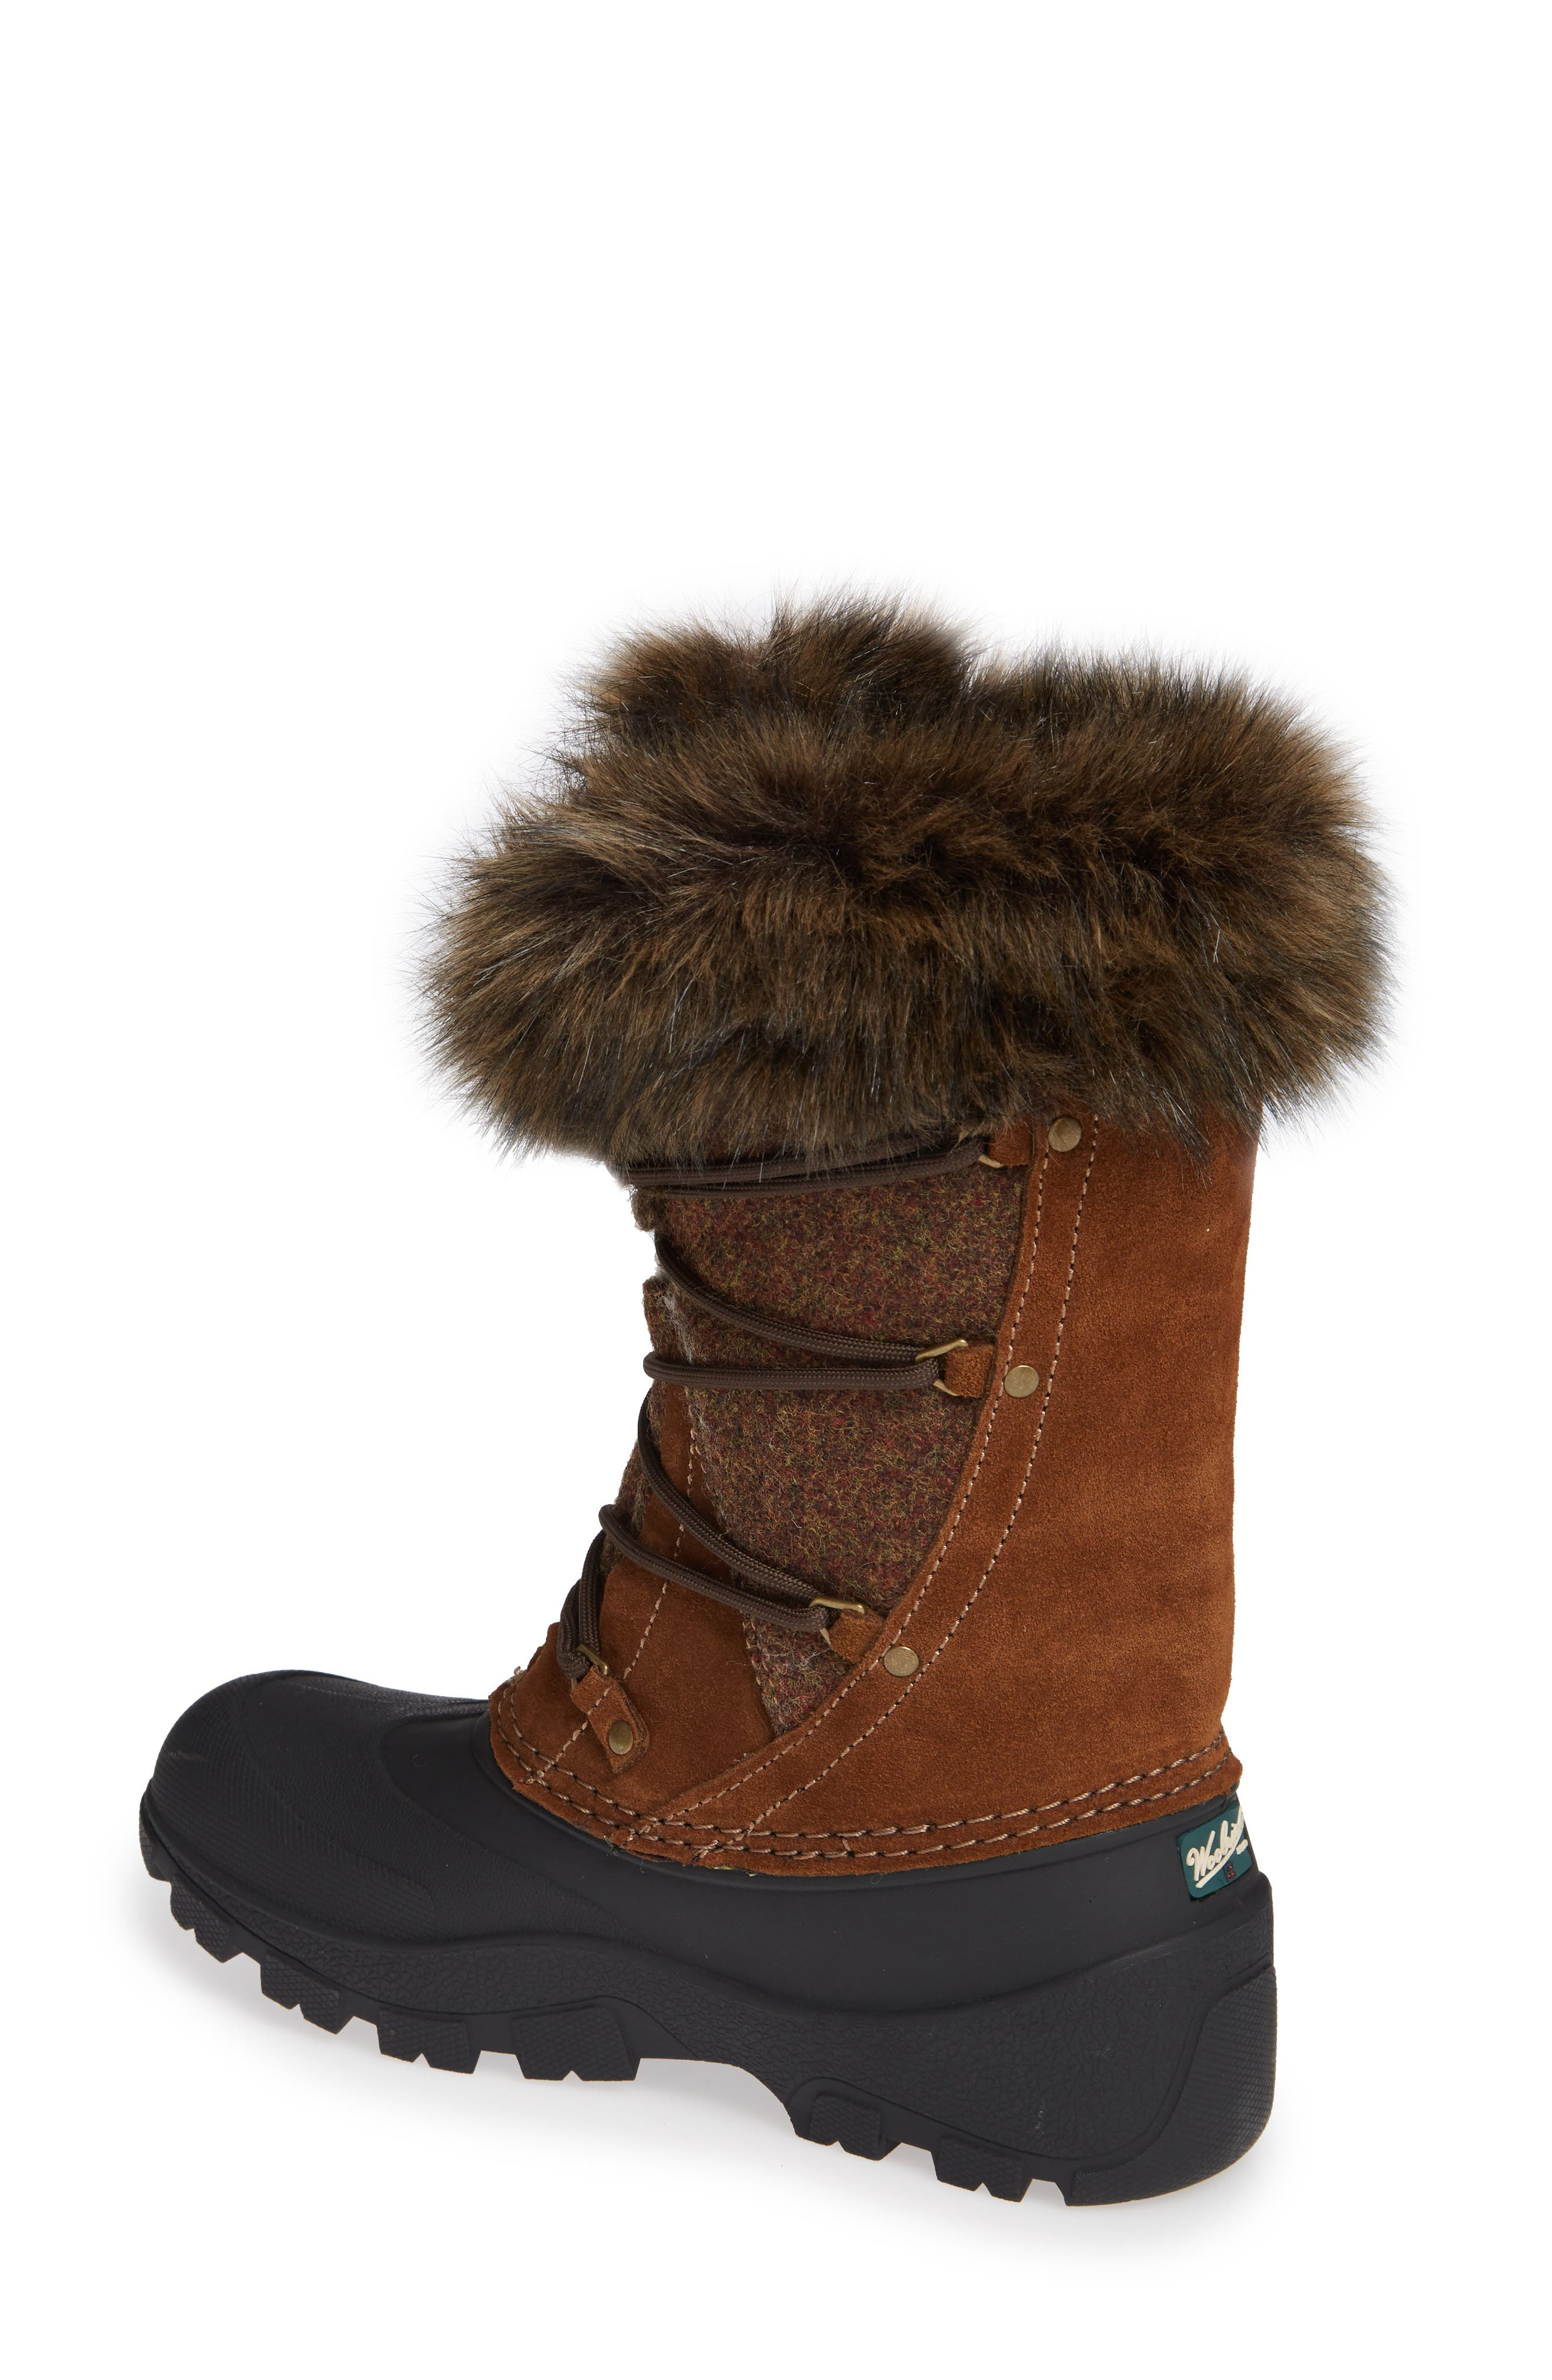 Ice Cougar Waterproof Knee High Winter Boot with Faux Fur Trim,                             Alternate thumbnail 2, color,                             DACHSHUND WOOL